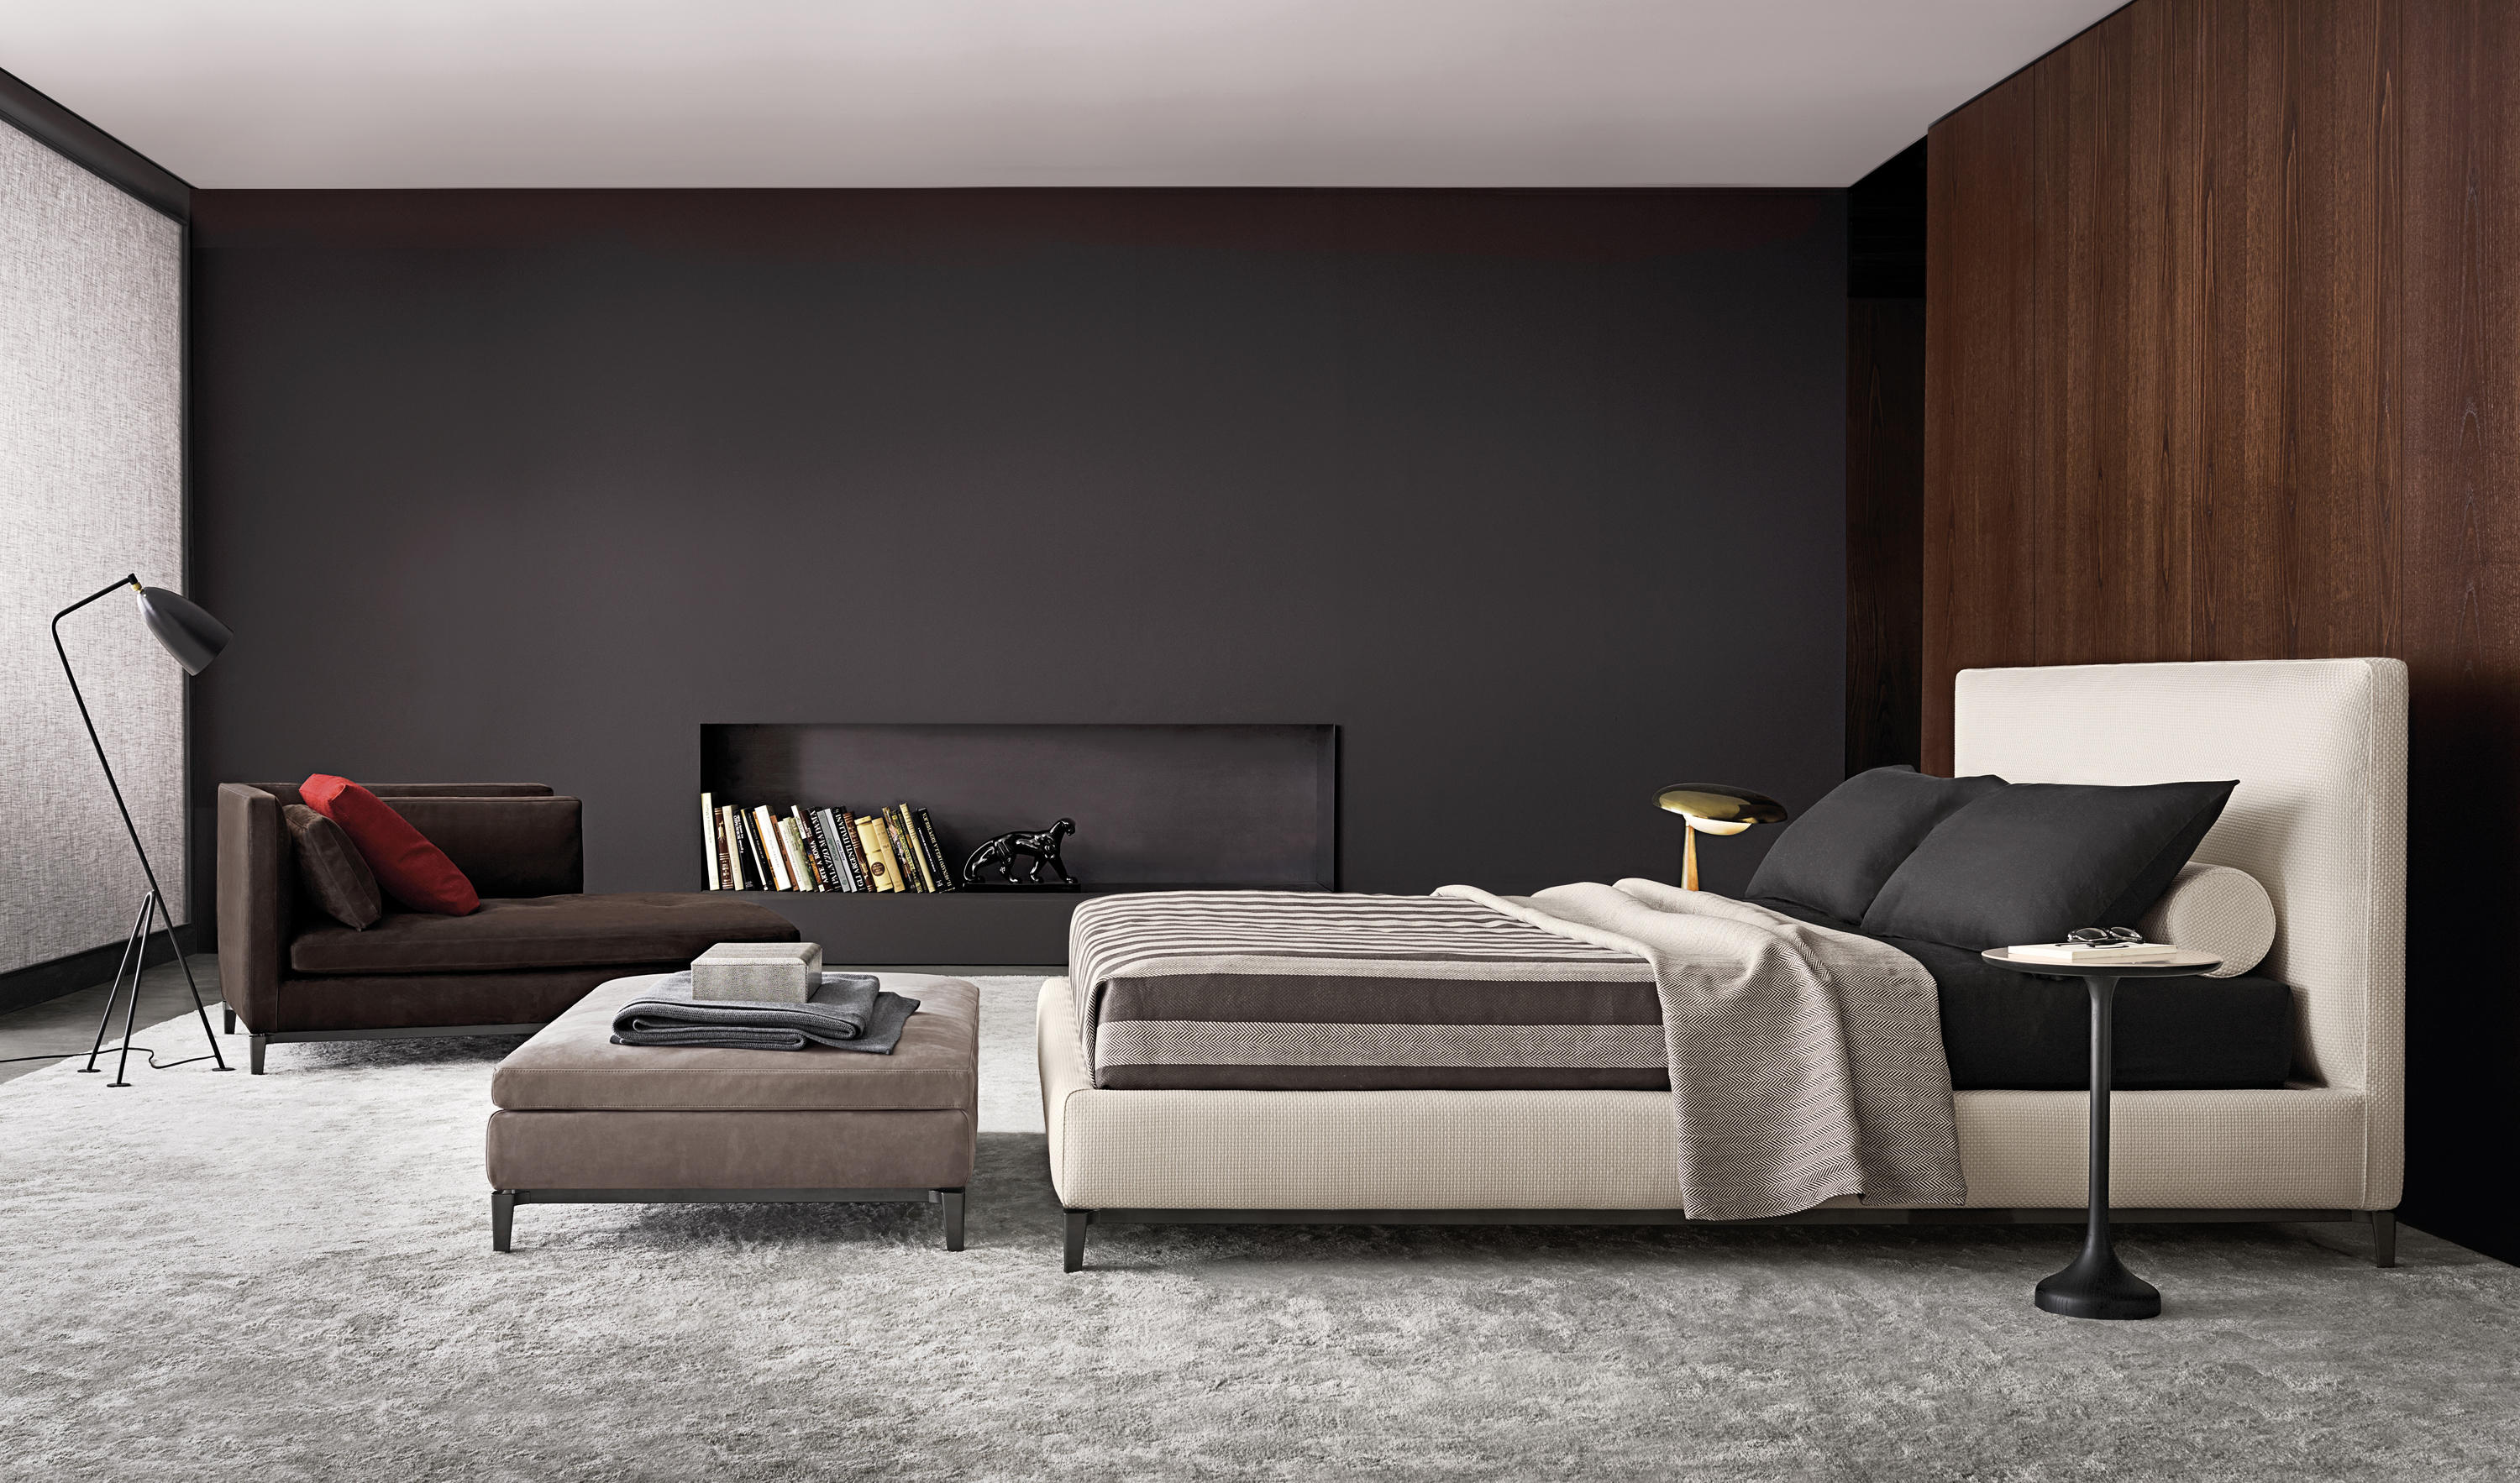 andersen bed quilt beds from minotti architonic rh architonic com